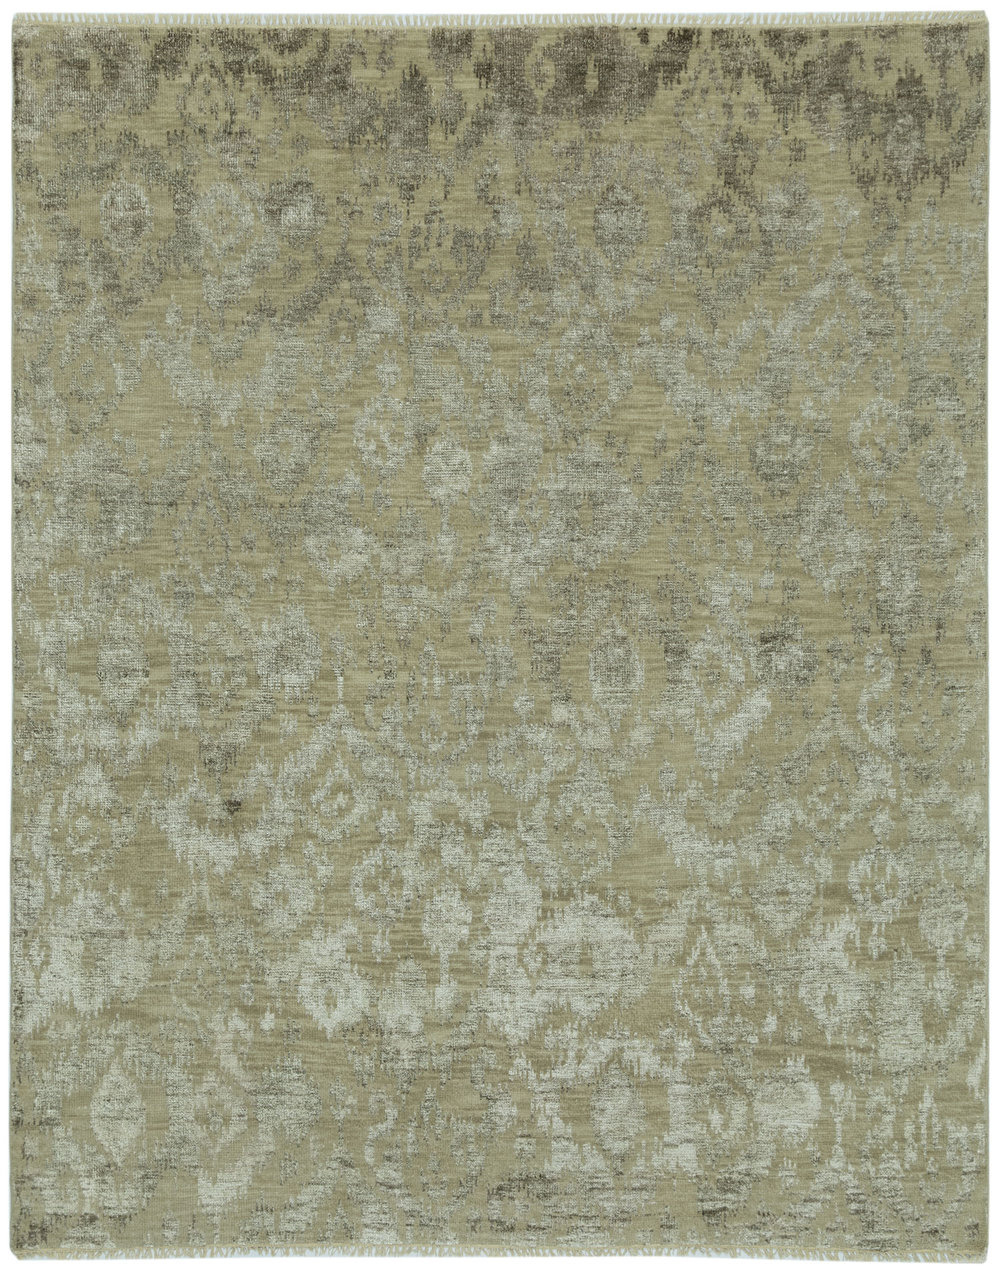 Gold recycled wool + silk.jpg